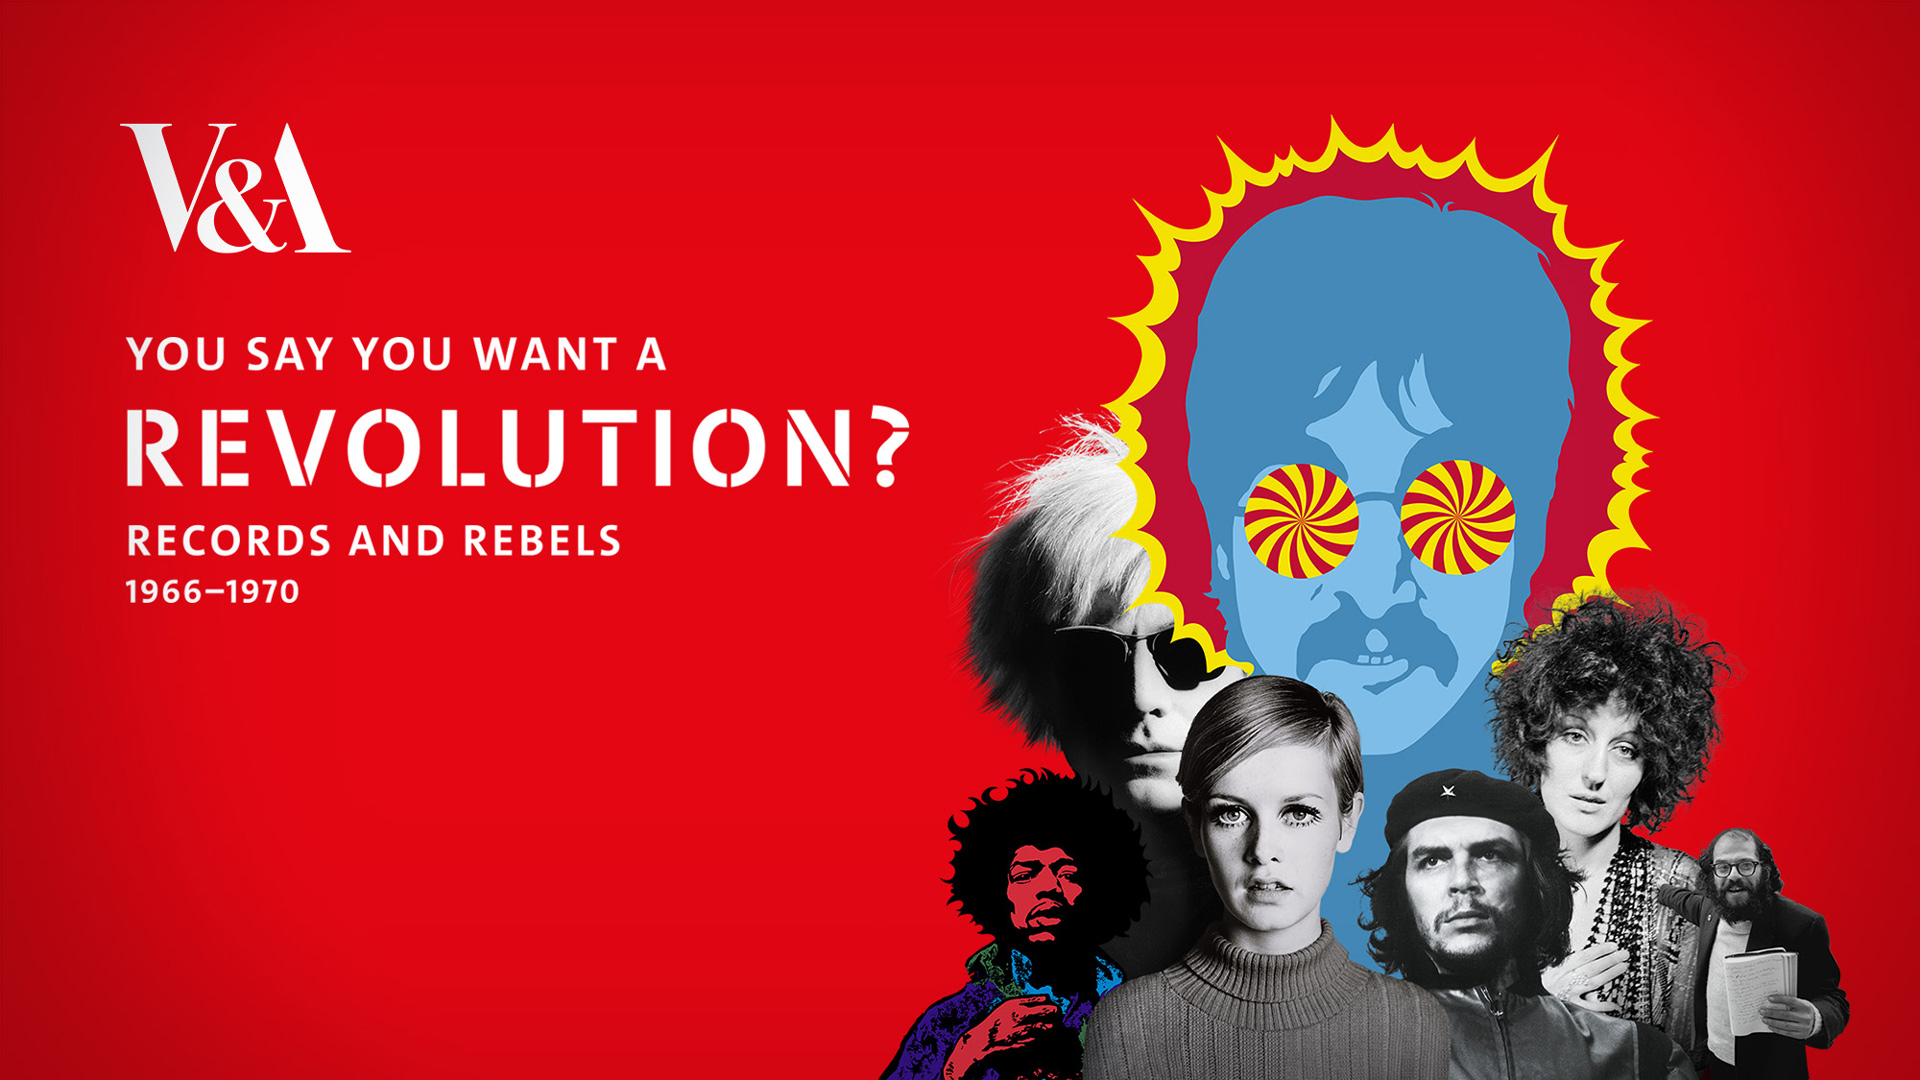 The V&A museum, Revolution exhibition, motion graphics design, london, 60's, sixties, records and rebels, roxanne silverwood, revolution